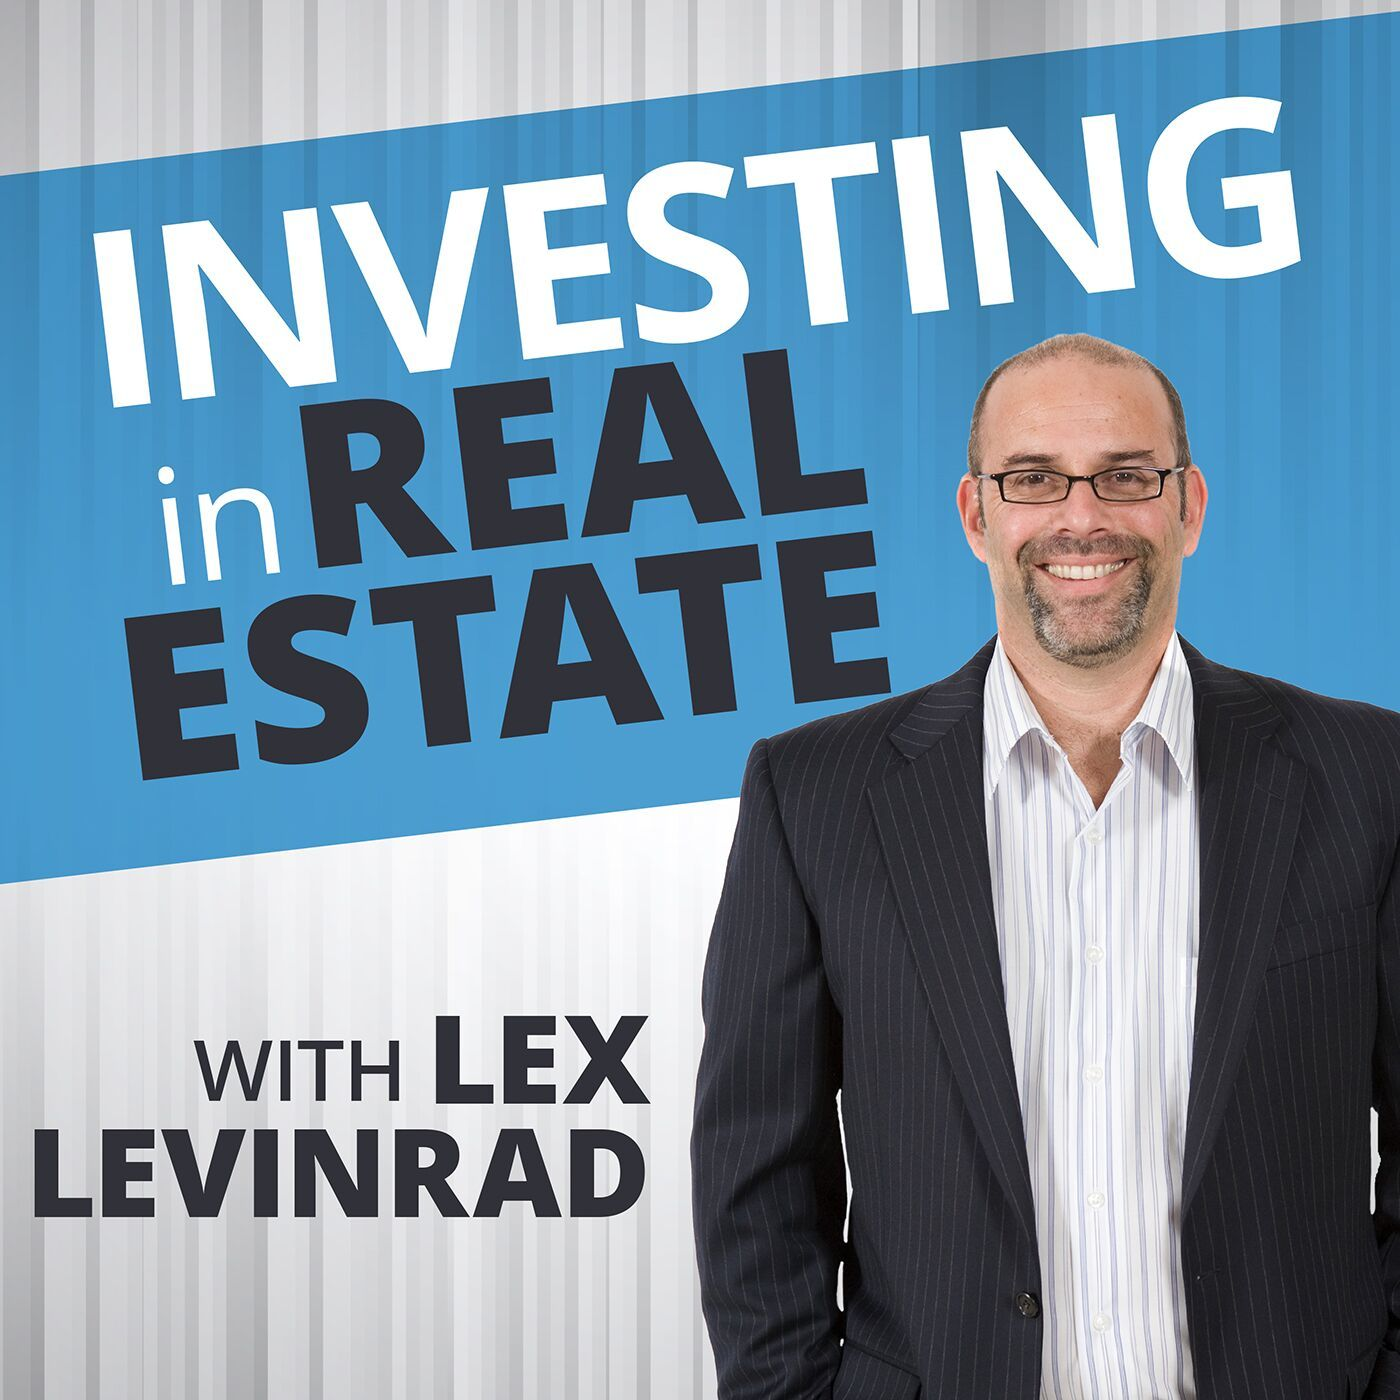 Investing In Real Estate With Lex Levinrad